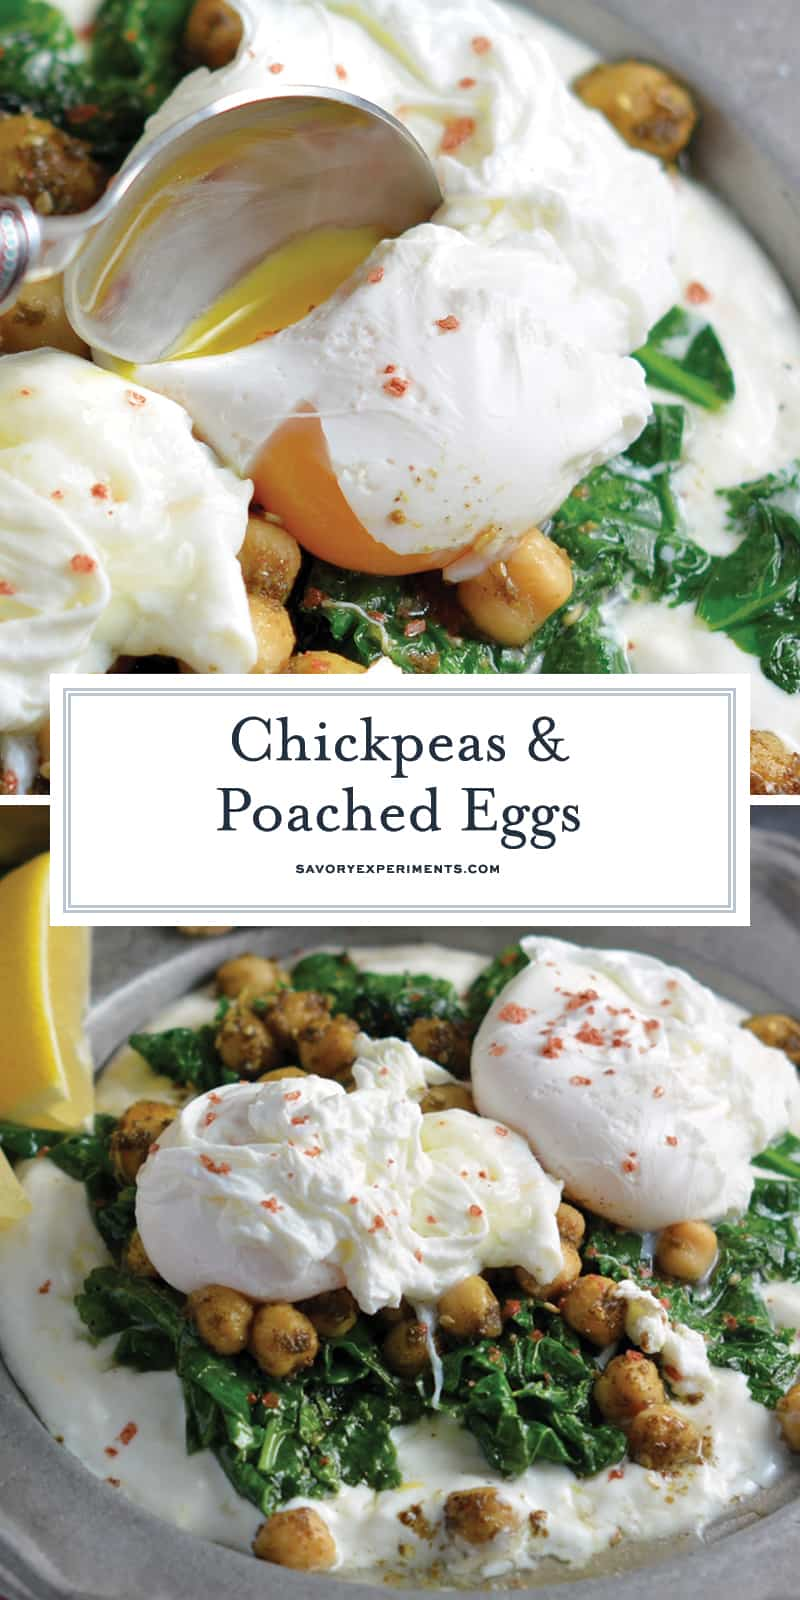 Gluten-Free Chickpeas and Poached Eggs are a healthy meal idea using yogurt, spinach and mediterranean spices. #poachedeggs www.savoryexperiments.com